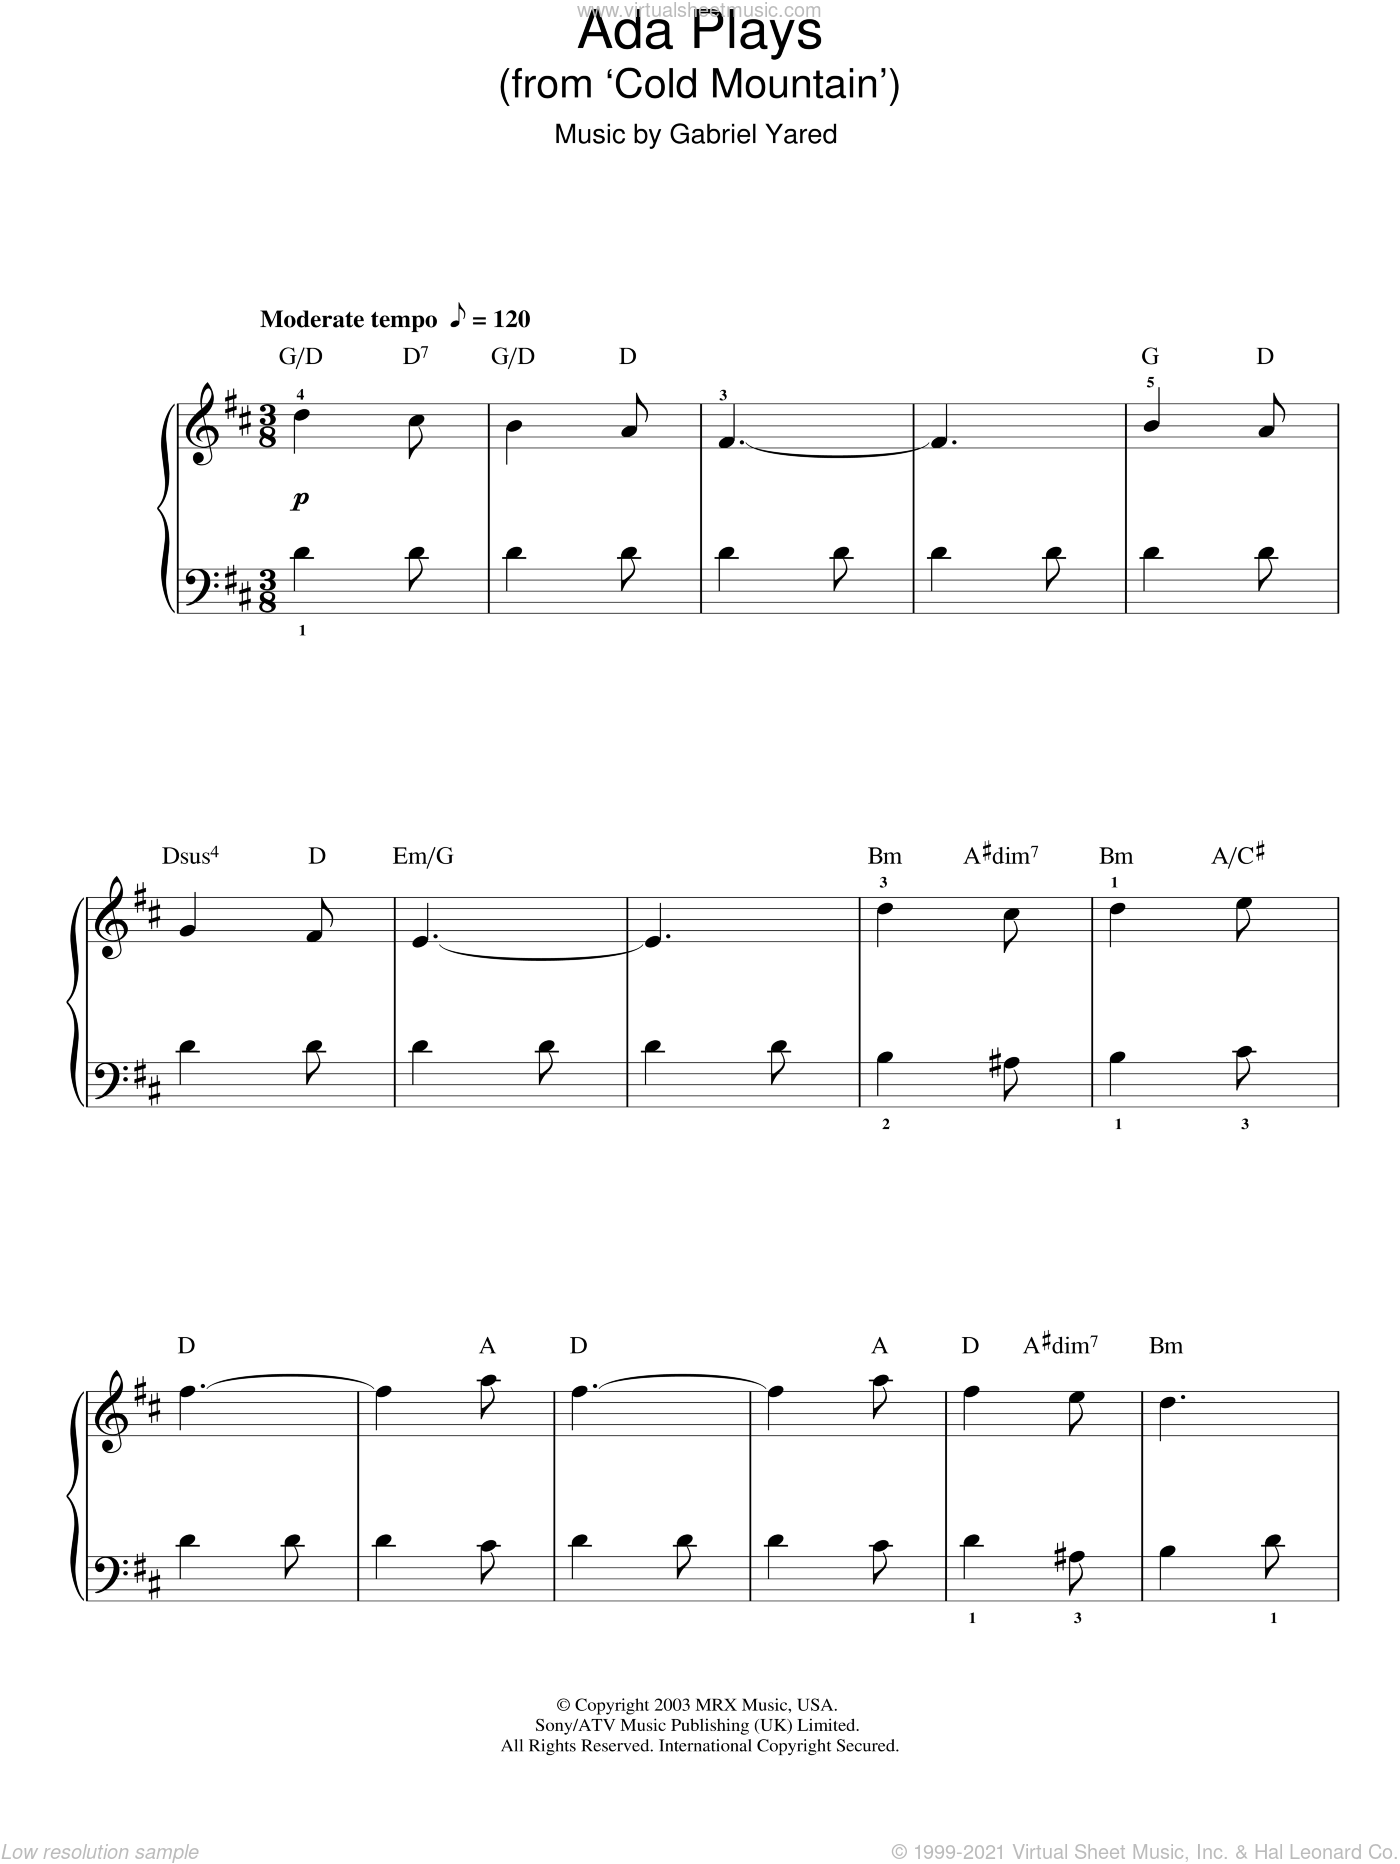 Ada Plays sheet music for piano solo by Gabriel Yared. Score Image Preview.